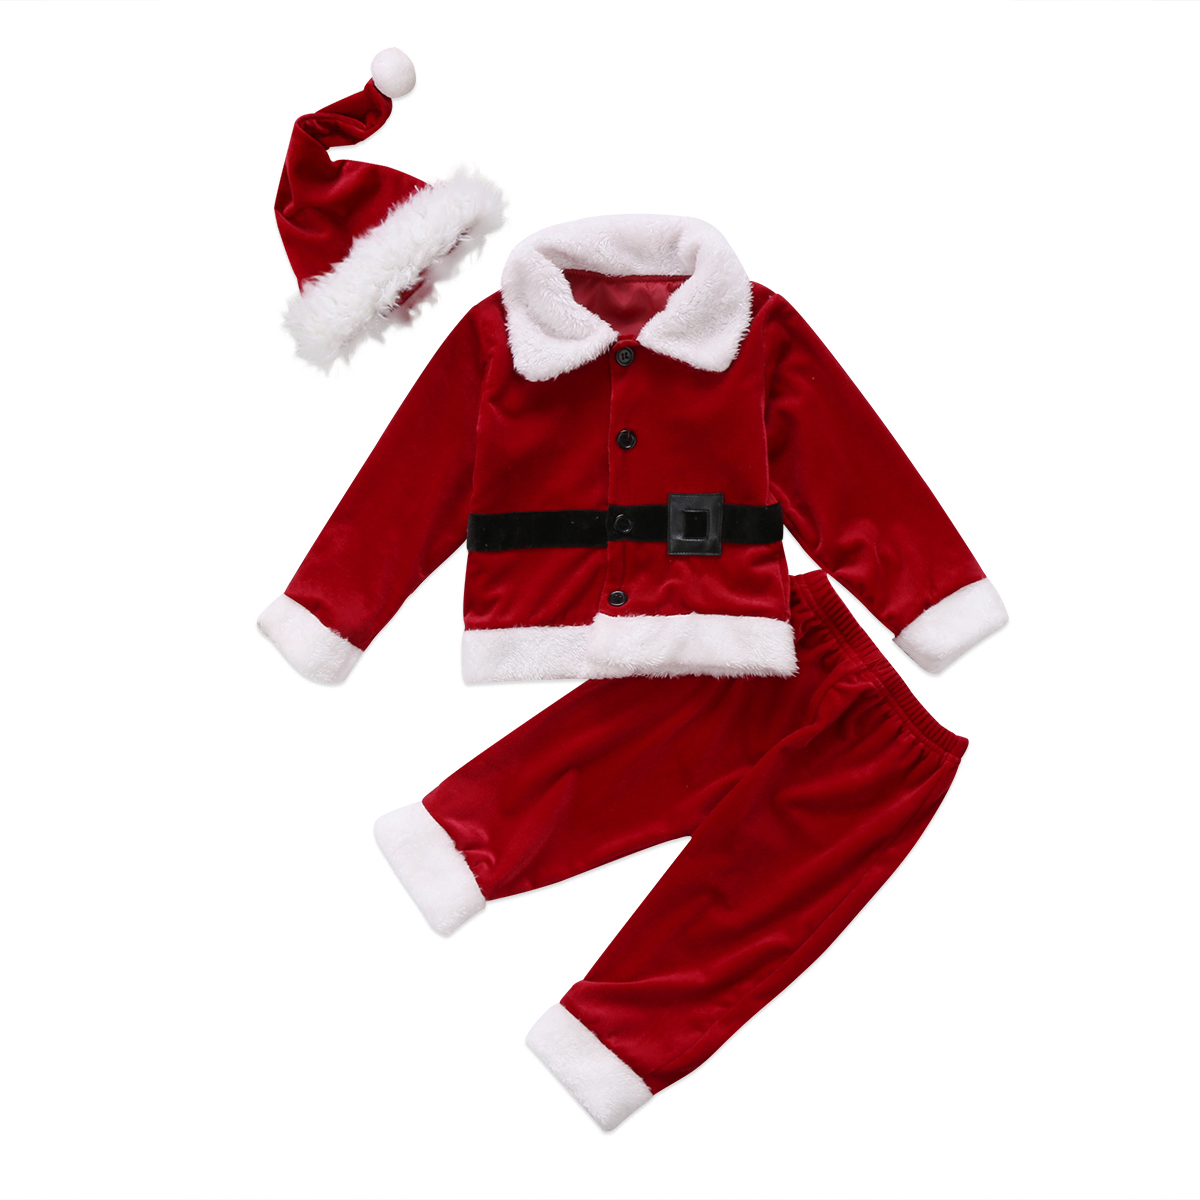 2017 New year kid baby boys girls Christmas Costume Santa Claus Suit Christmas Clothes Tops+Pant 2pcs Boys girl Kids Clothes newborn boys girls christmas santa claus infant new year clothes 4pcs santa christmas tops pants hat socks outfit set costume